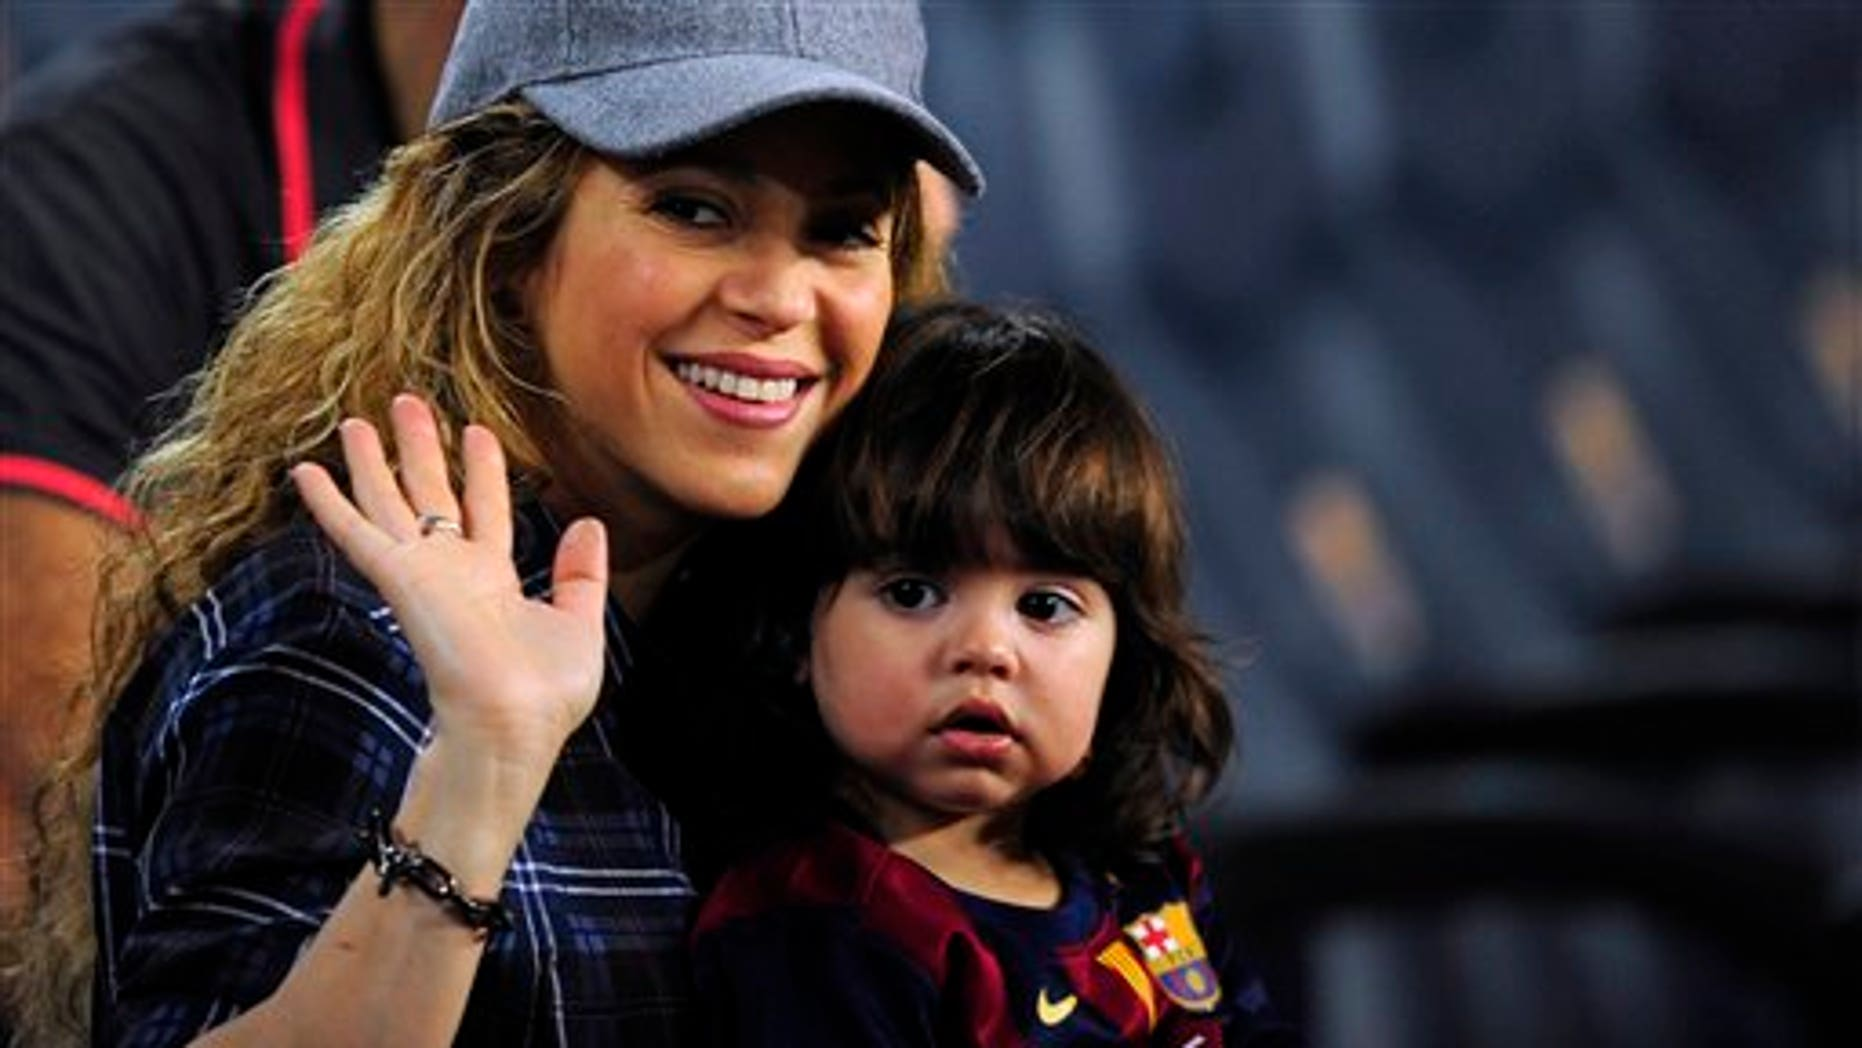 Colombian singer Shakira, left, waves with his son Milan prior of a Spanish La Liga soccer match between FC Barcelona and Eibar at the Camp Nou stadium against Eibar in Barcelona, Spain, Saturday, Oct. 18, 2014. (AP Photo/Manu Fernandez)